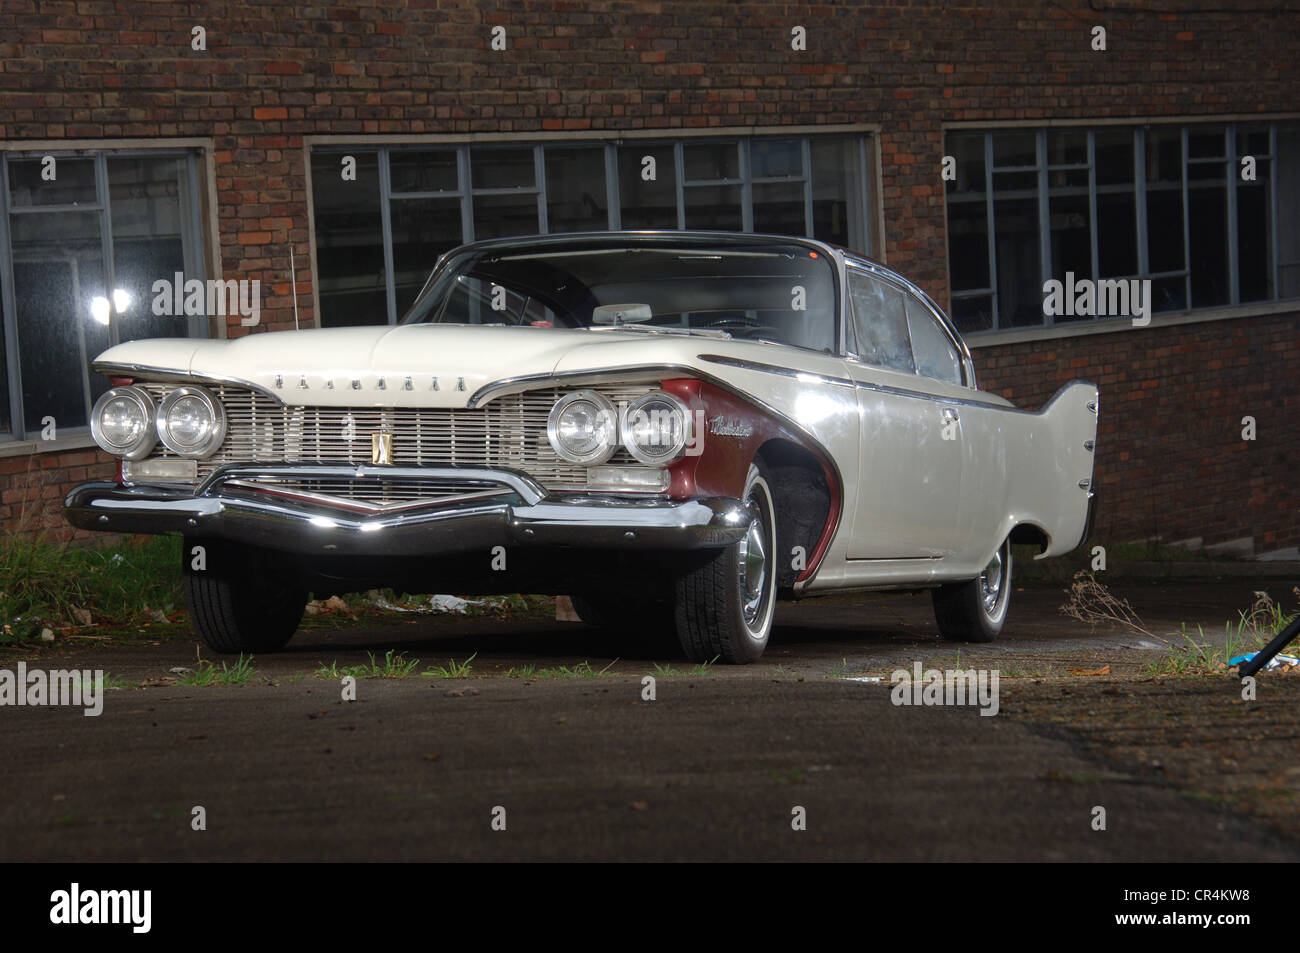 Plymouth Belvedere Coupe Classic American Door Car With